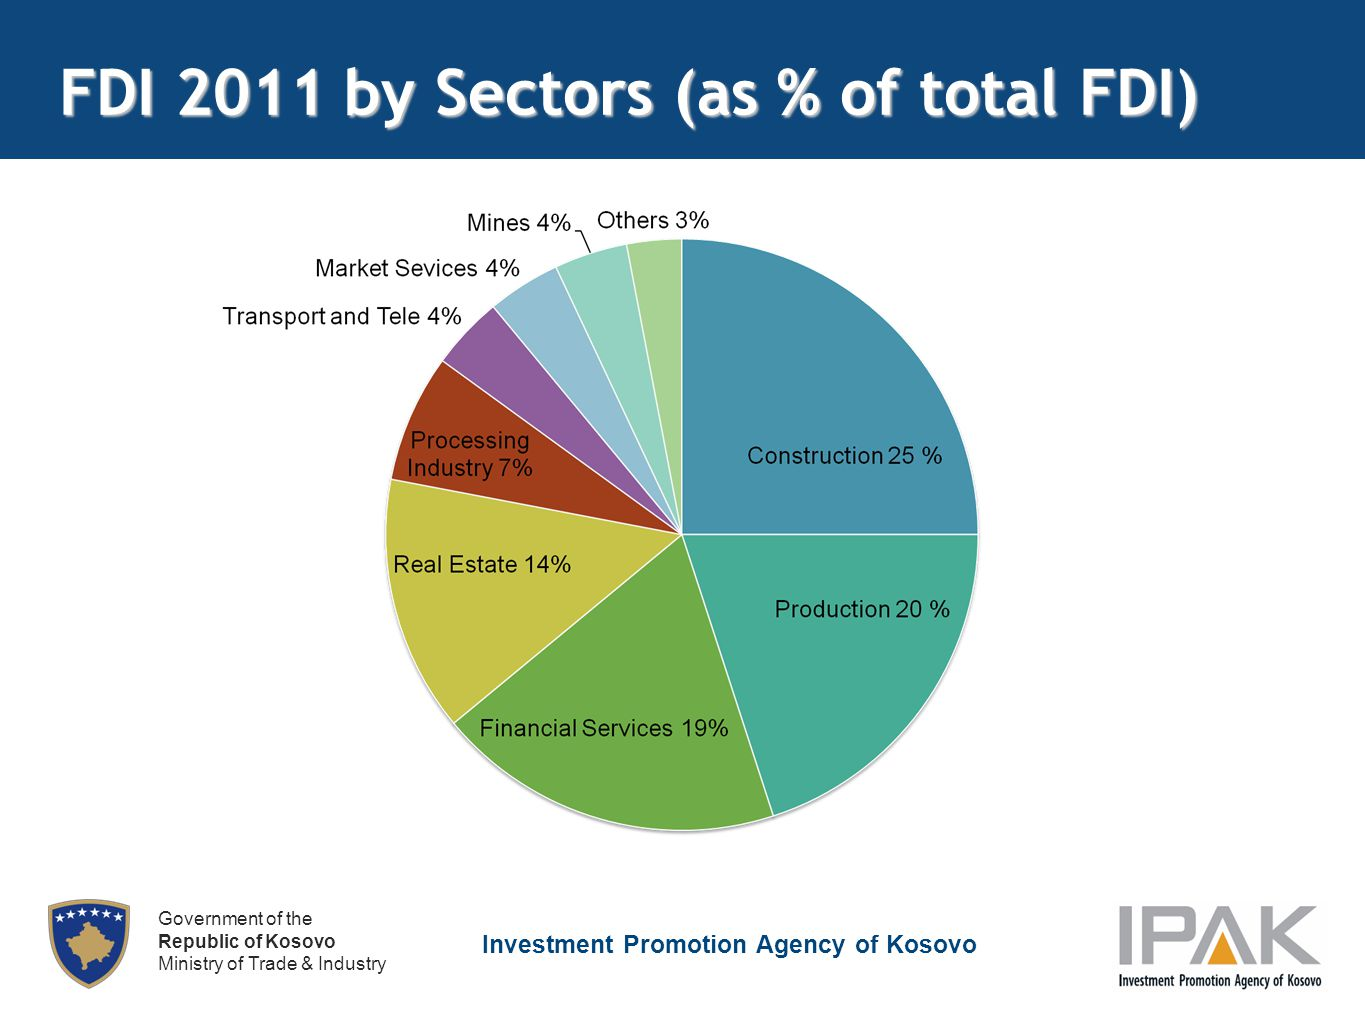 Investment Promotion Agency of Kosovo Government of the Republic of Kosovo Ministry of Trade & Industry FDI 2011 by Sectors (as % of total FDI)